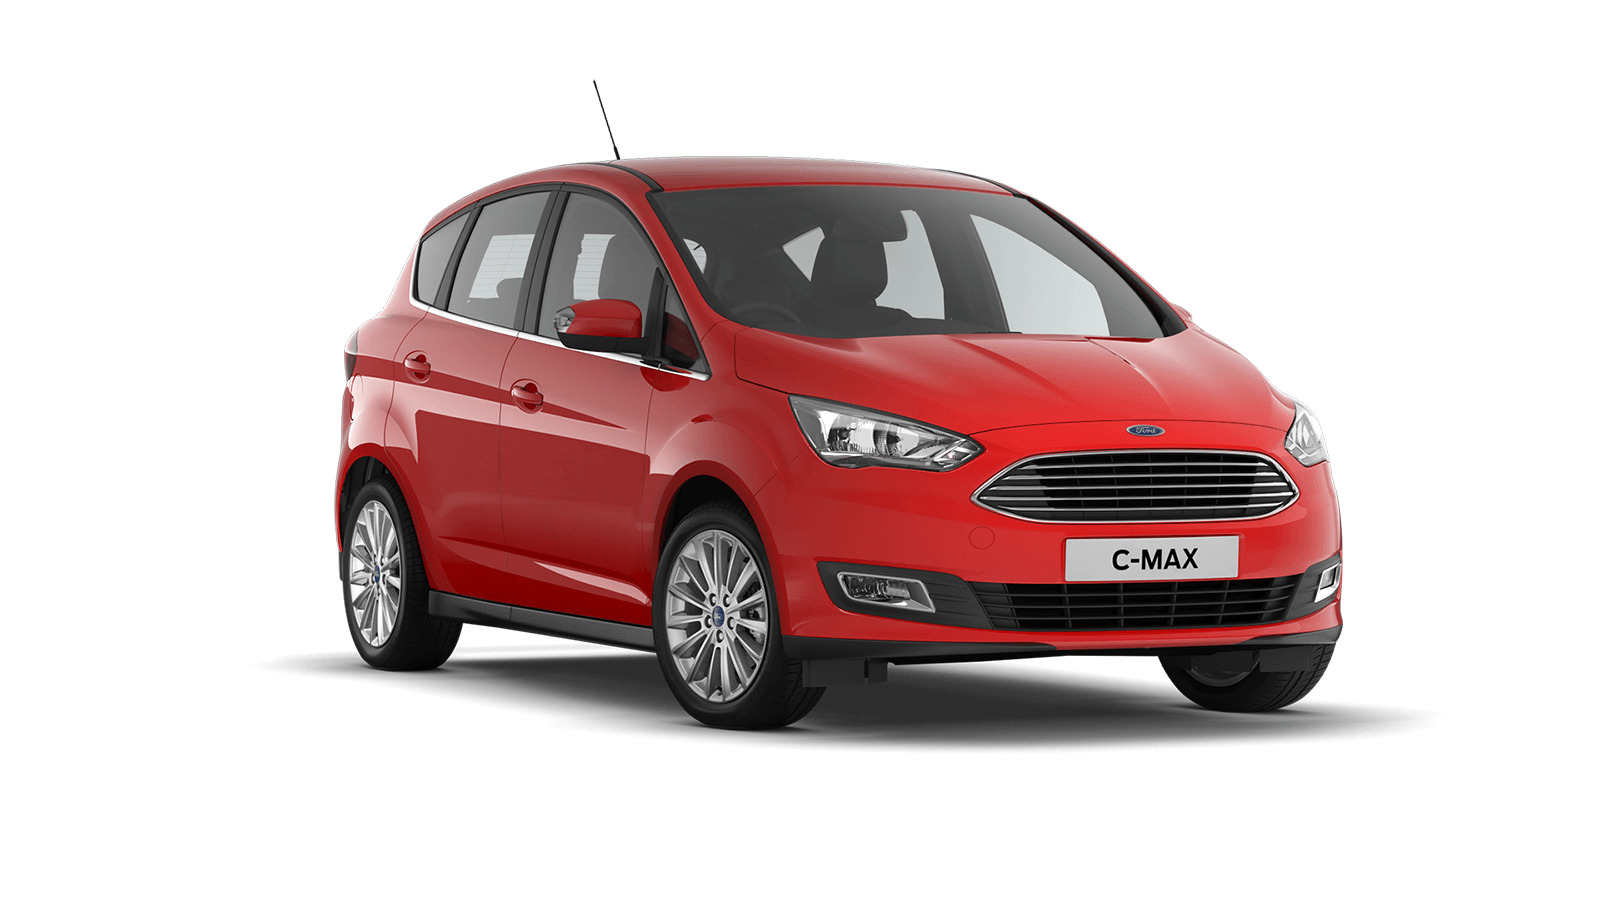 Ford C-MAX Titanium 1.5L TDCi 120PS at Browne & Day